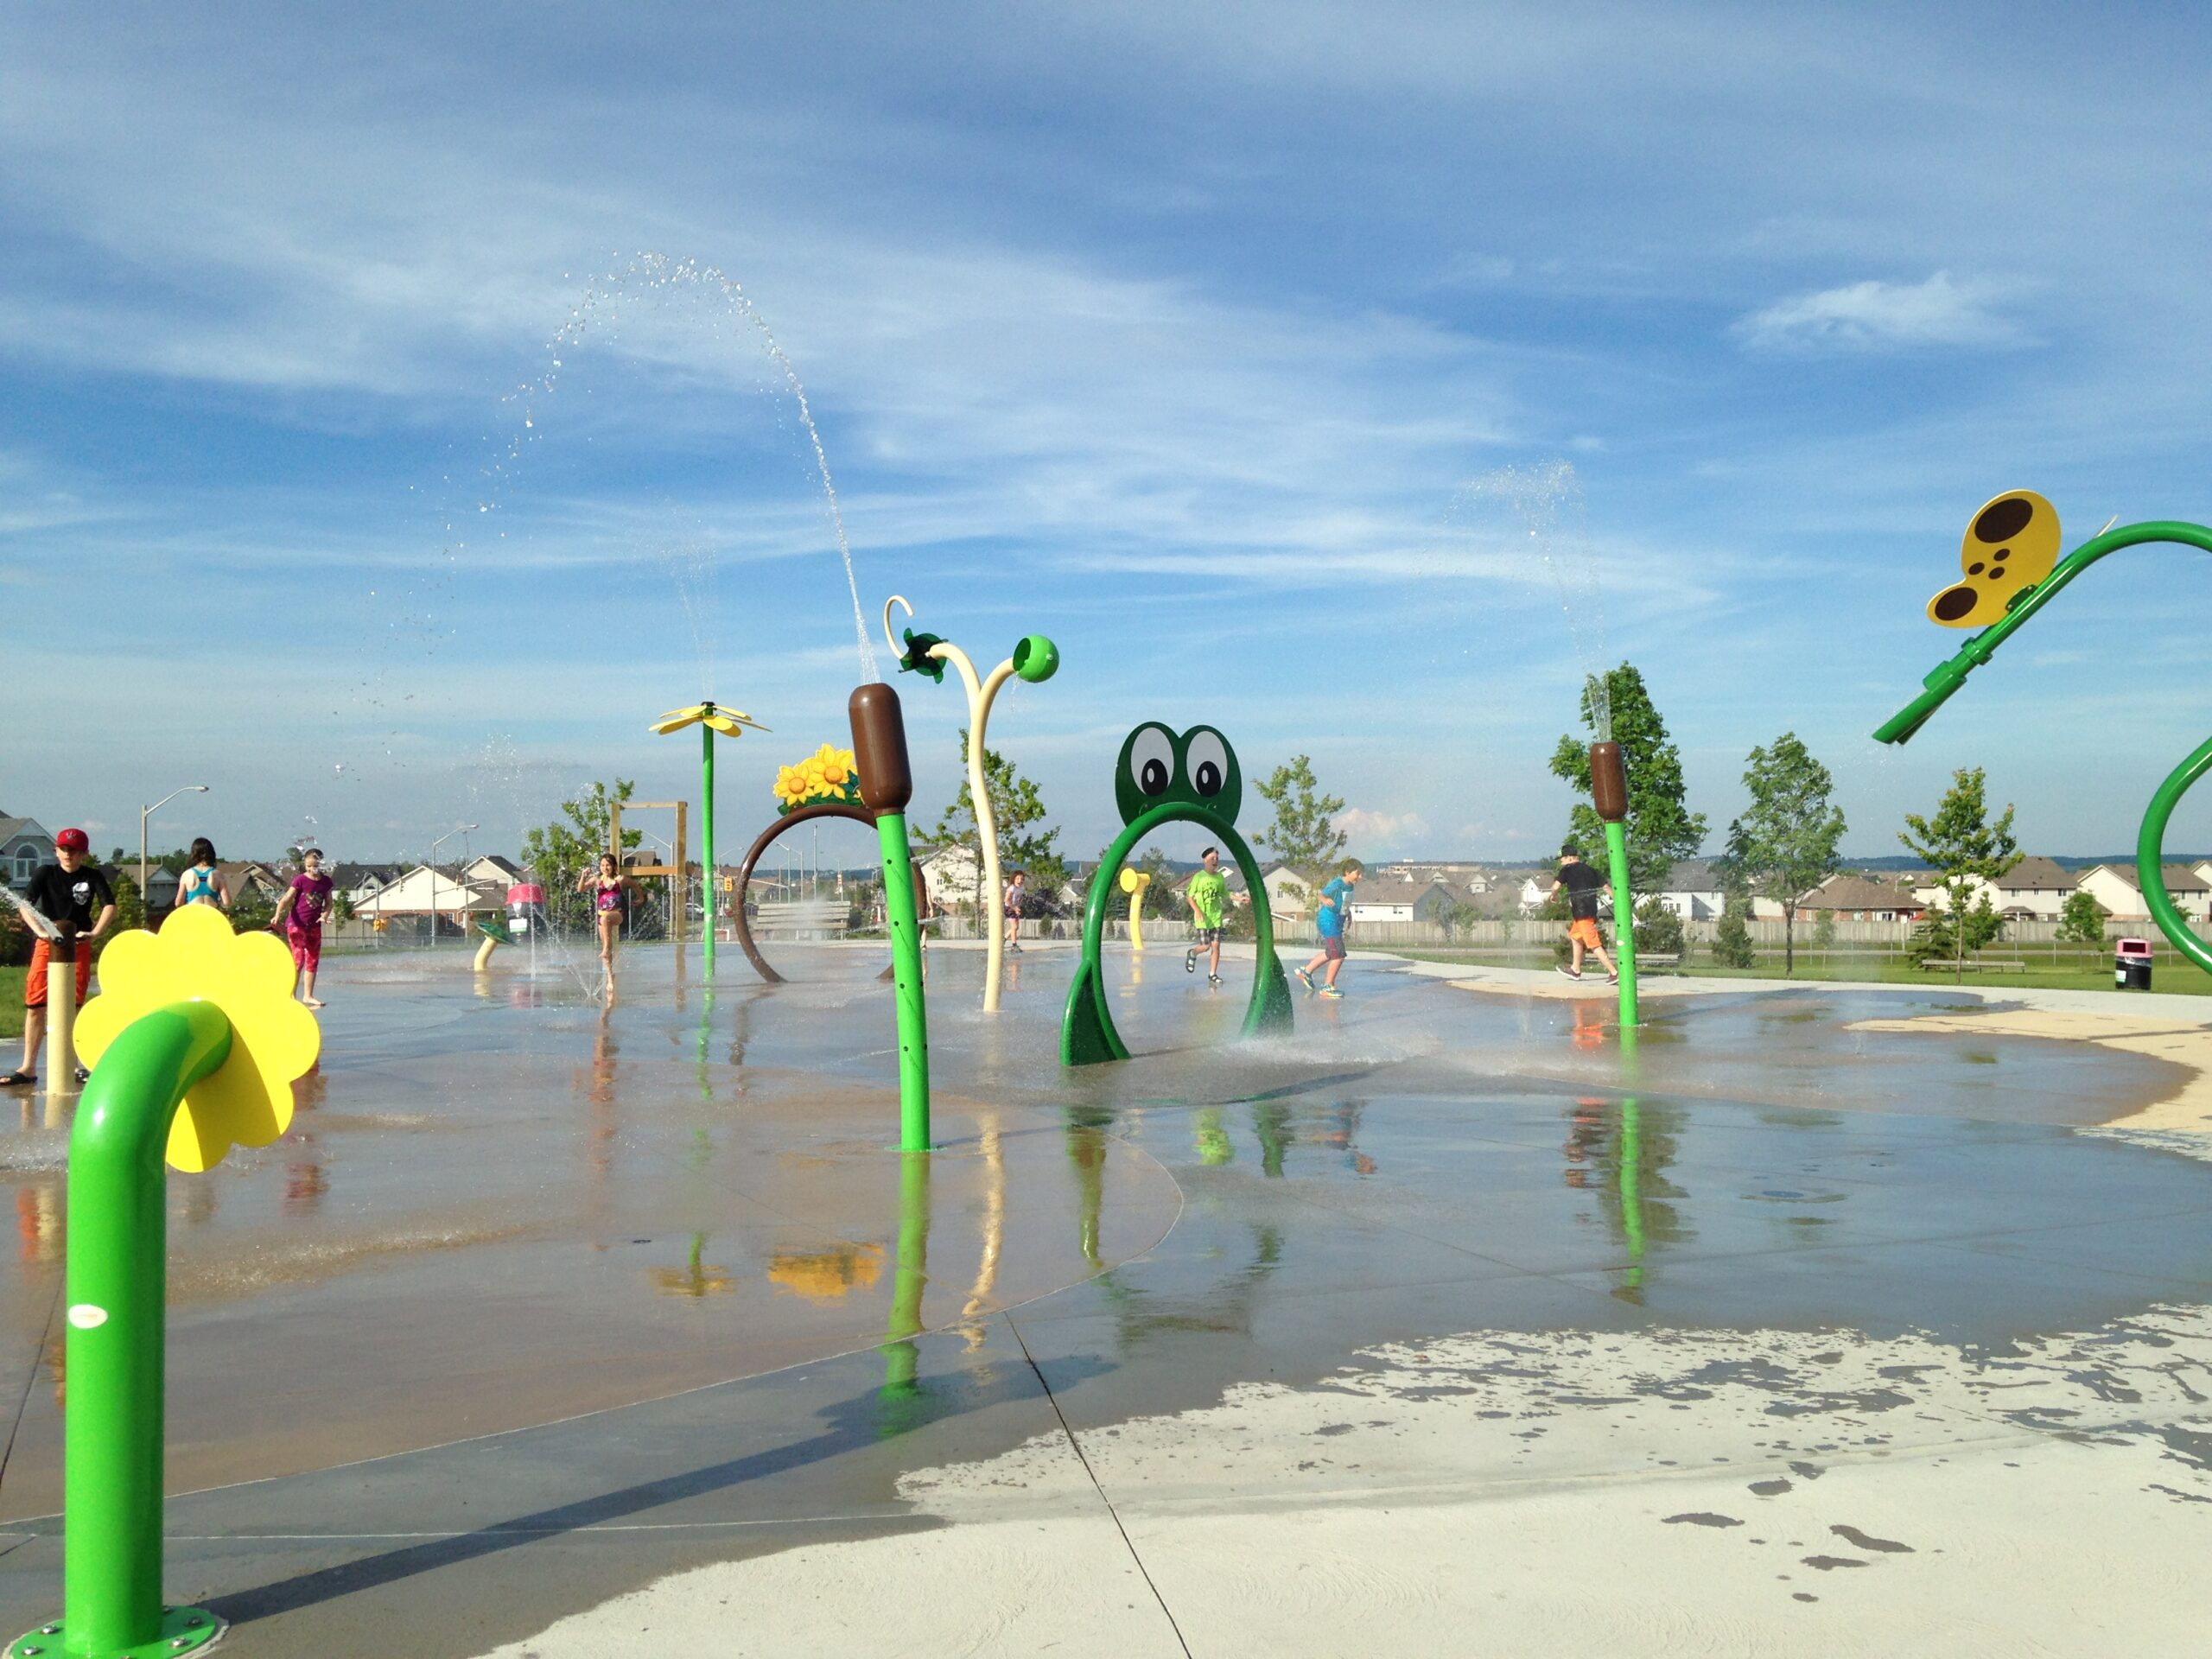 Fendley Park Splashpad